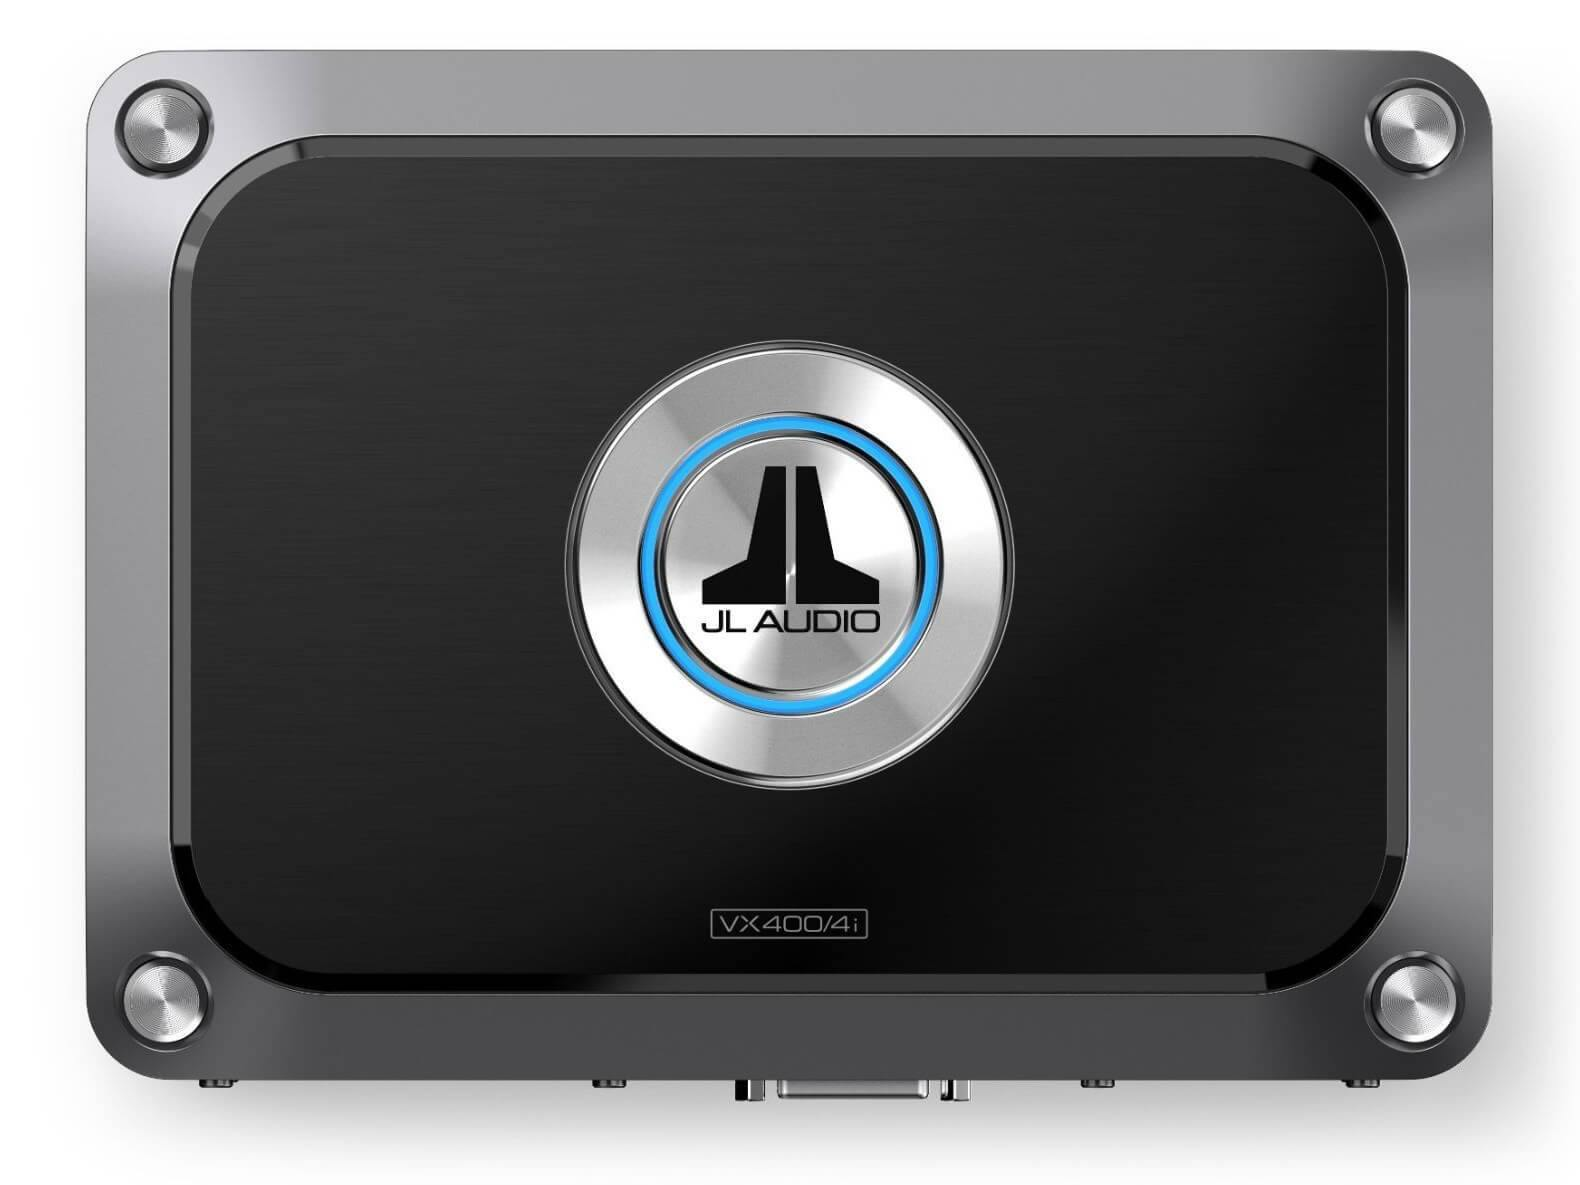 JL Audio VX400/4i - 4 Channel Class D Amplifier with DSP - 2